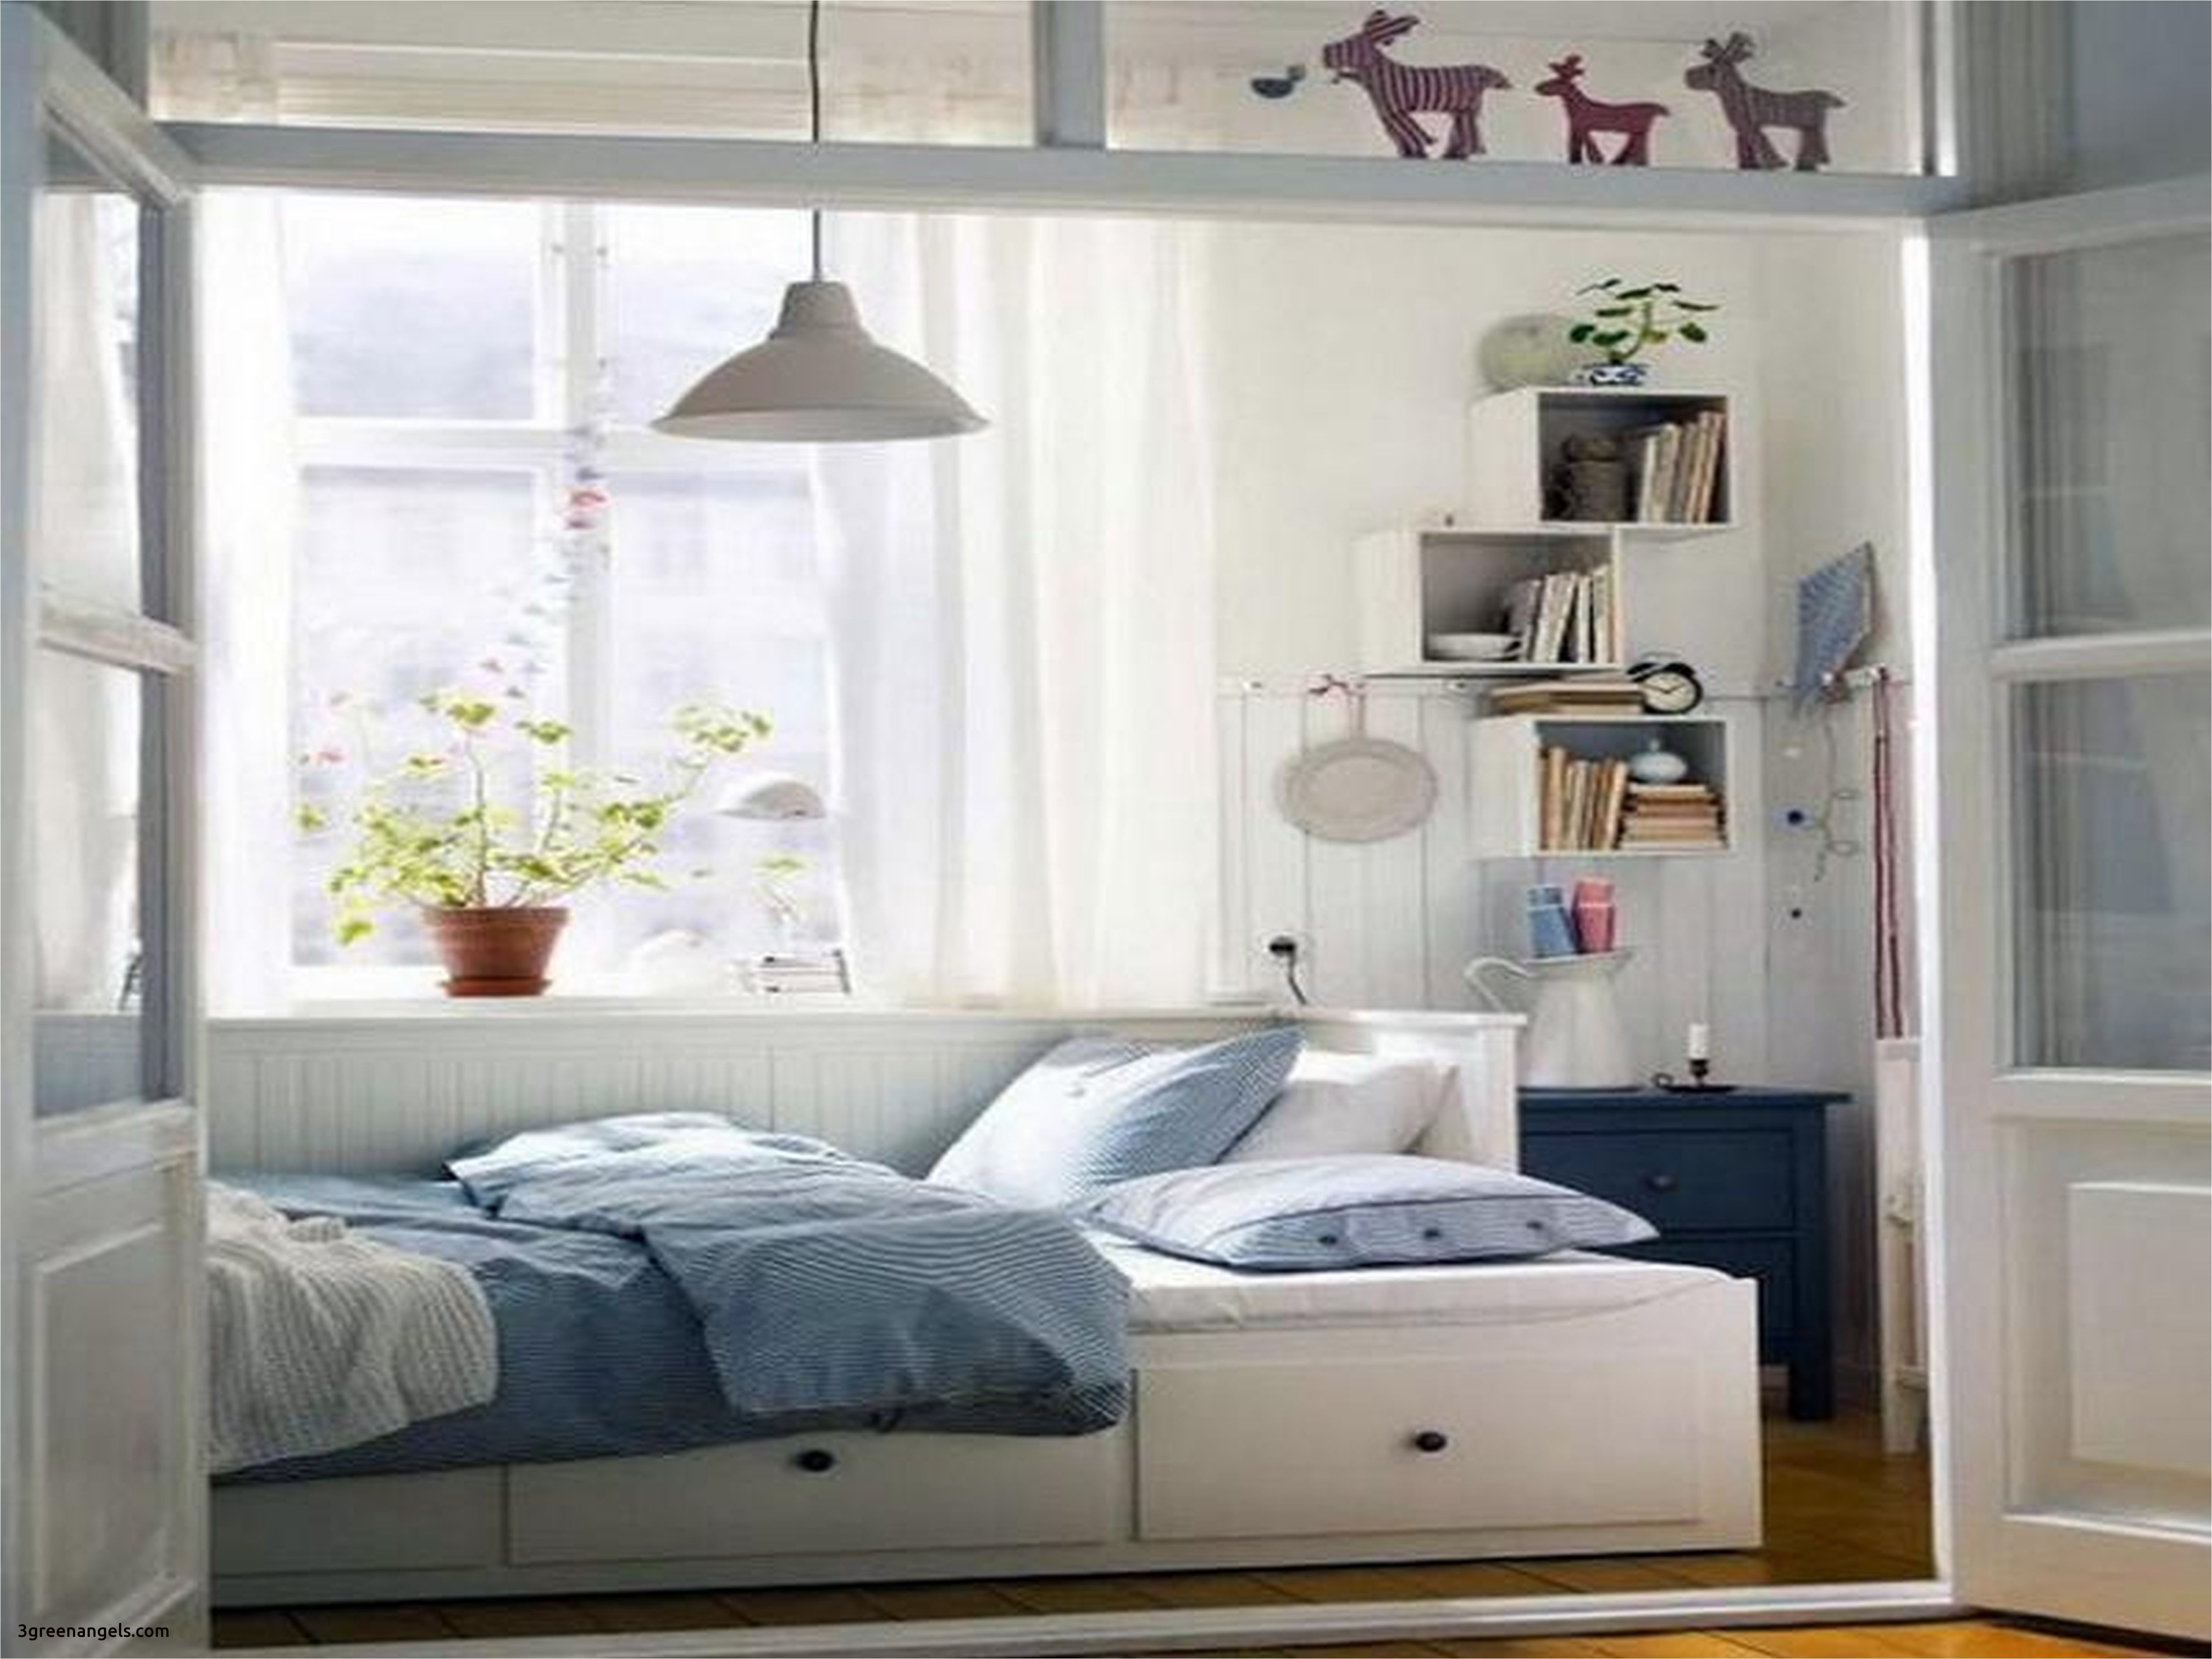 Small Bedroom Design Ideas Http 3greenangels Com Small Bedroom